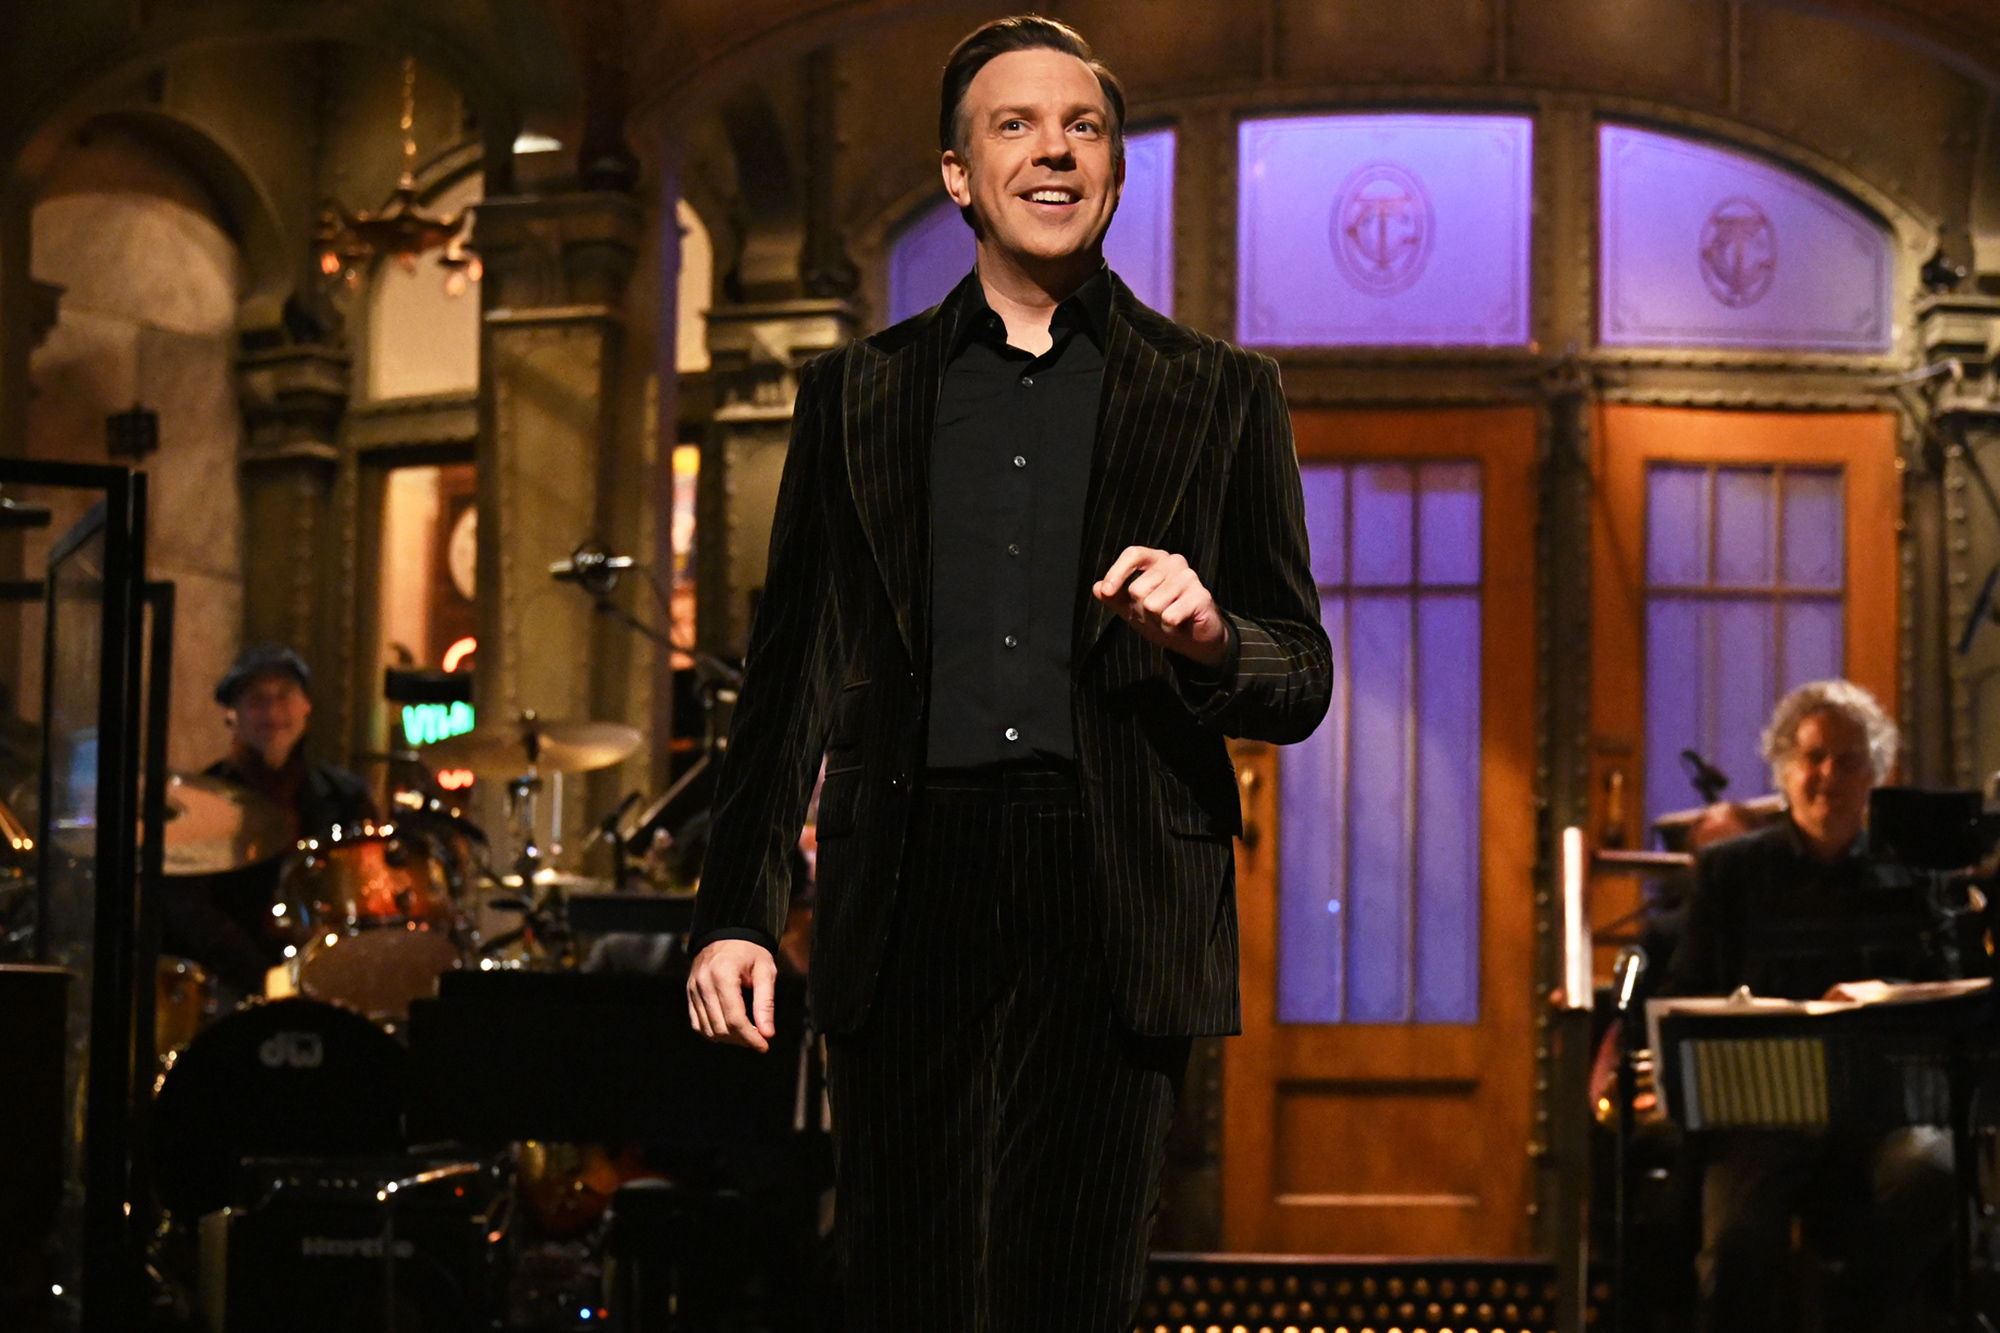 """SATURDAY NIGHT LIVE """"Jason Sudeikis"""" Episode 1809 Pictured: Host Jason Sudeikis during the monologue on Saturday, October 23, 2021."""